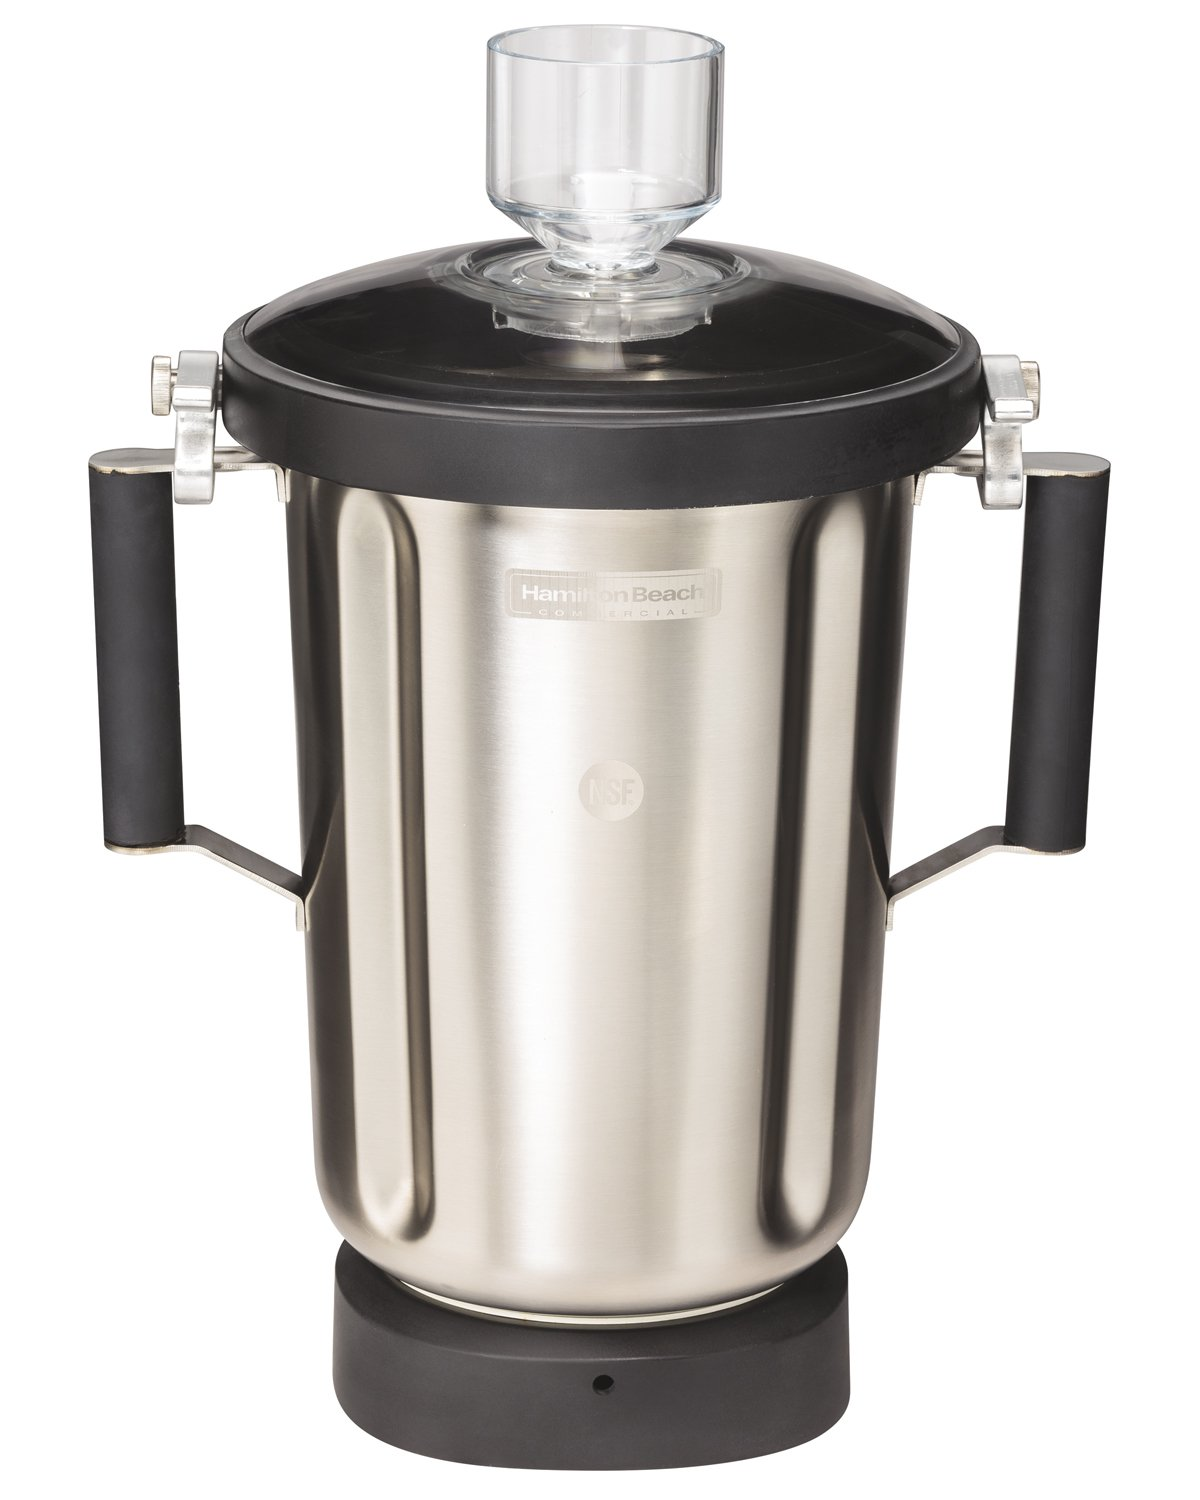 Hamilton Beach Commercial 6126-1100S HBF1100S 1 gal/4 L Container, 6'' L, 7.5'' W, 12'' H, Stainless Steel by Hamilton Beach